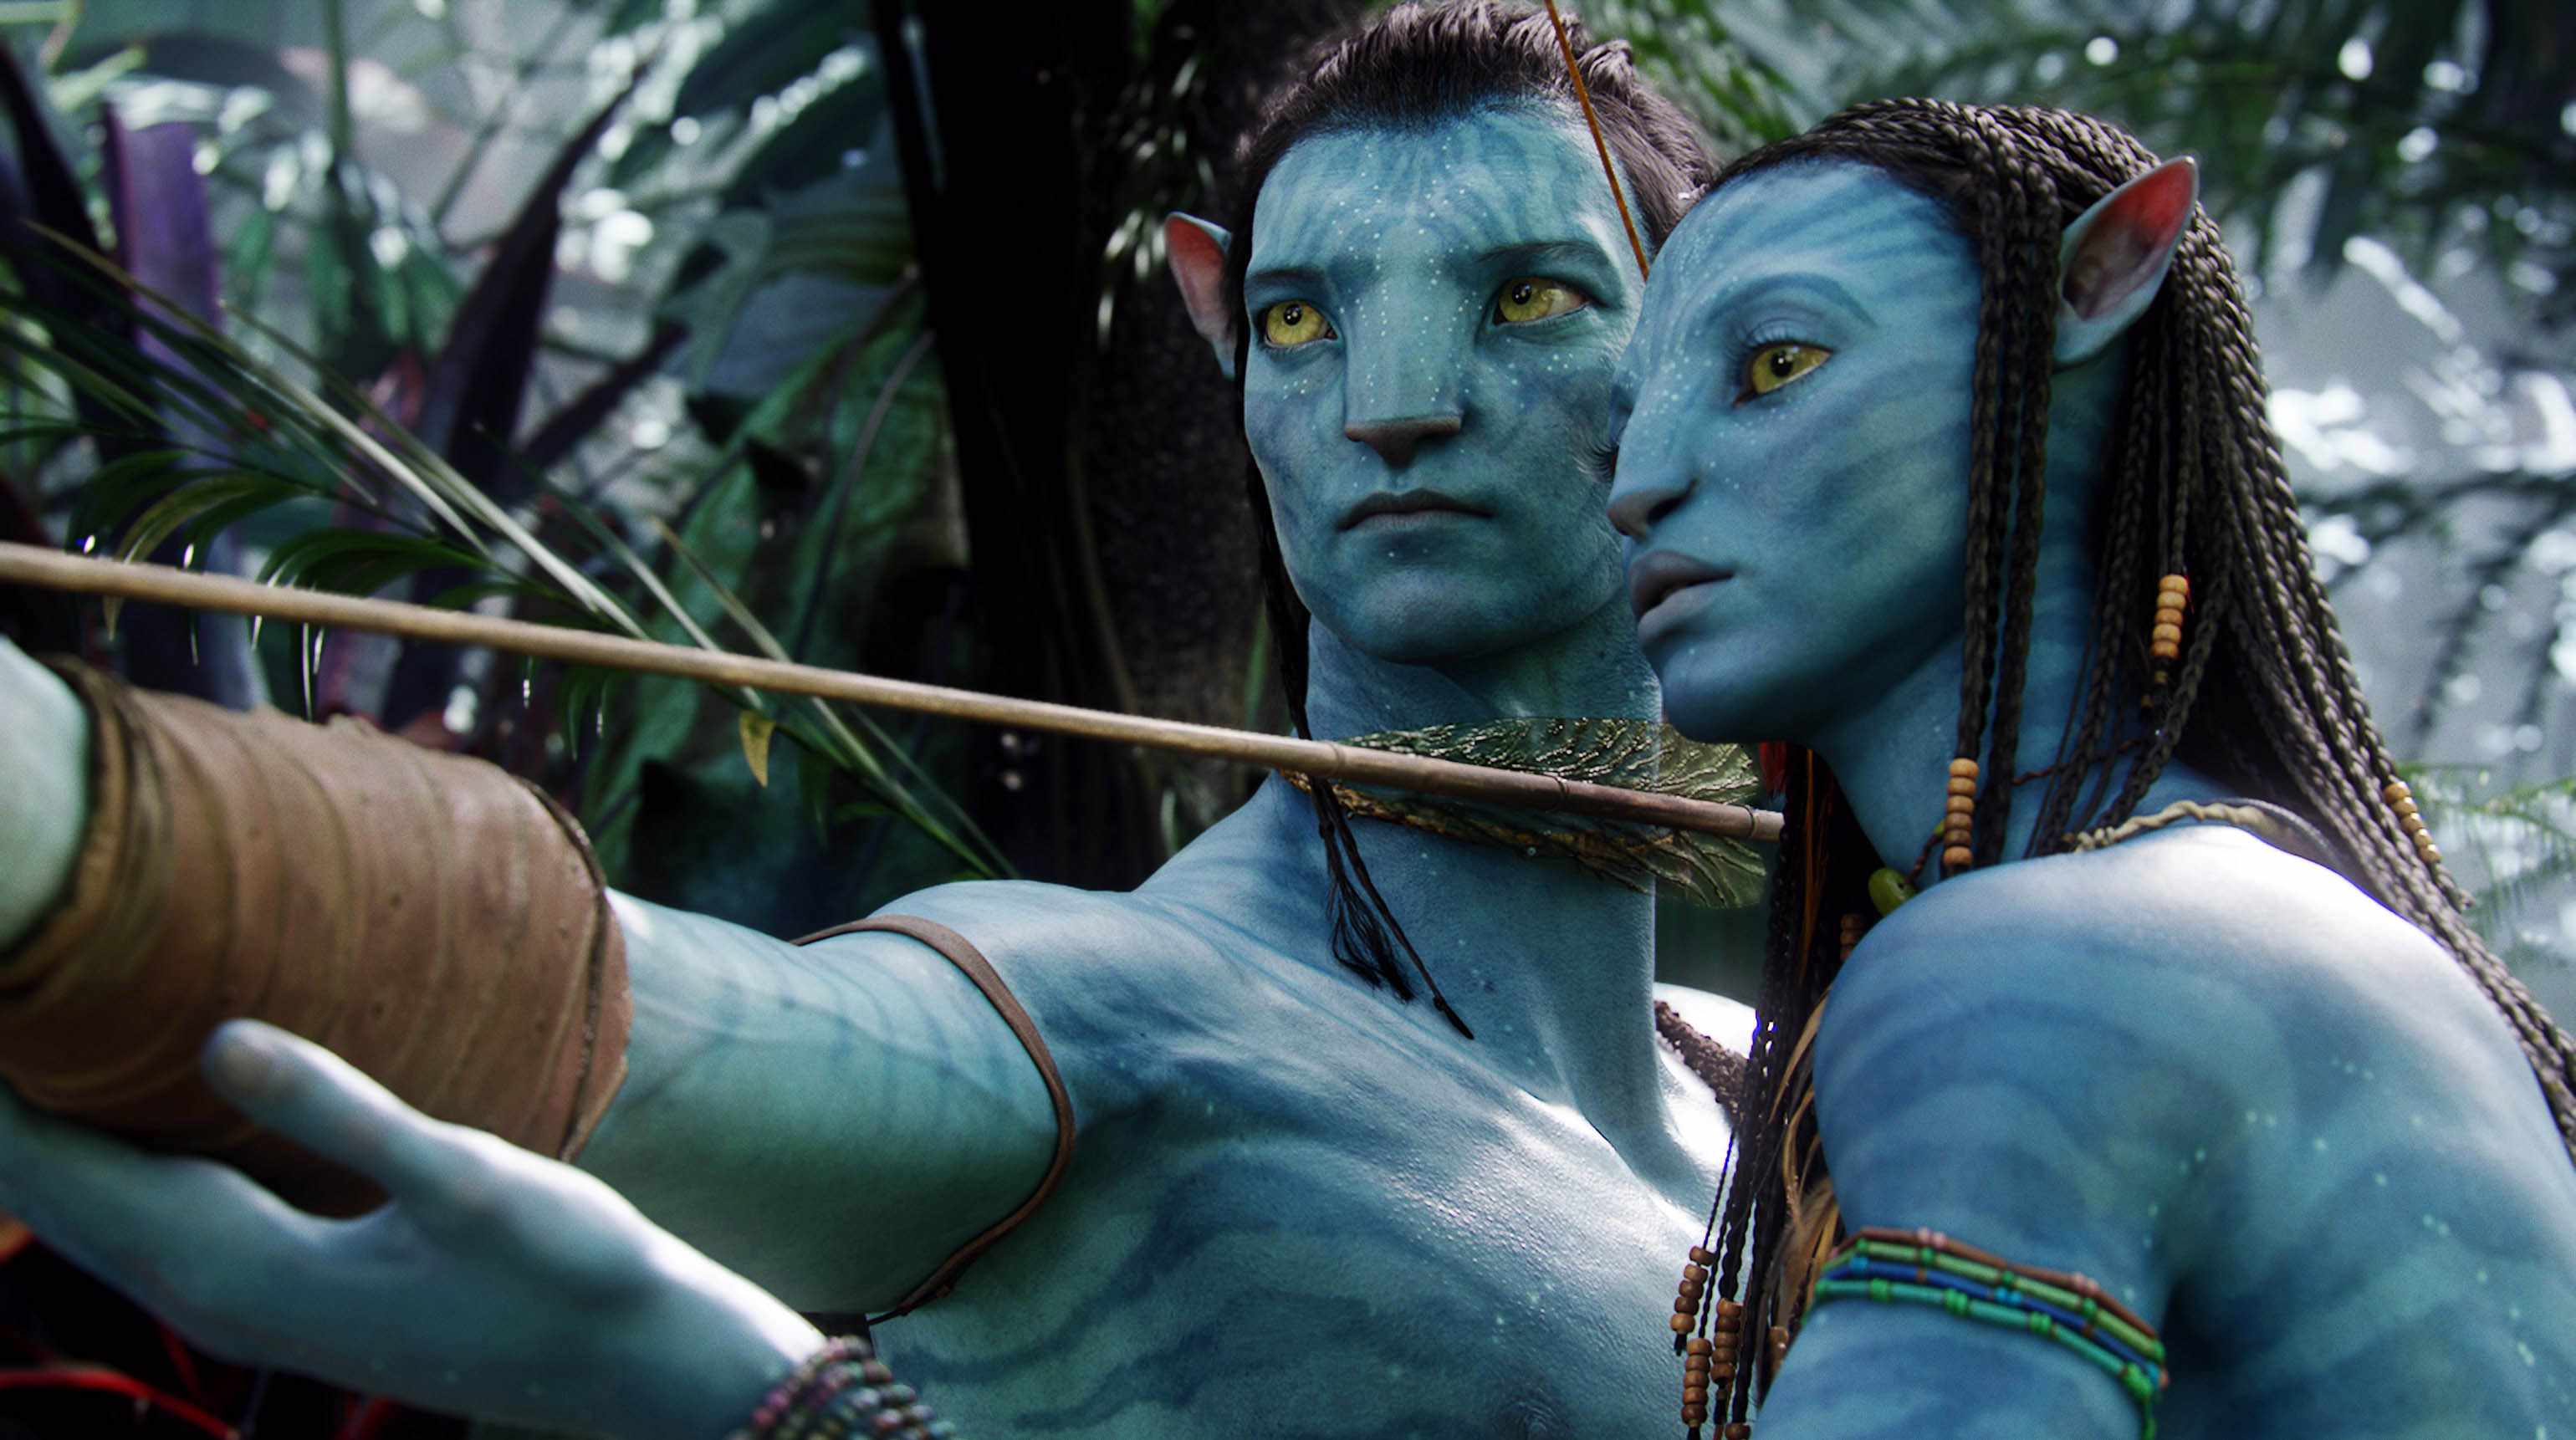 Neytiri (Zoë Saldana, right) teaches Jake (Sam Worthington) in Avatar (Sky, EH)